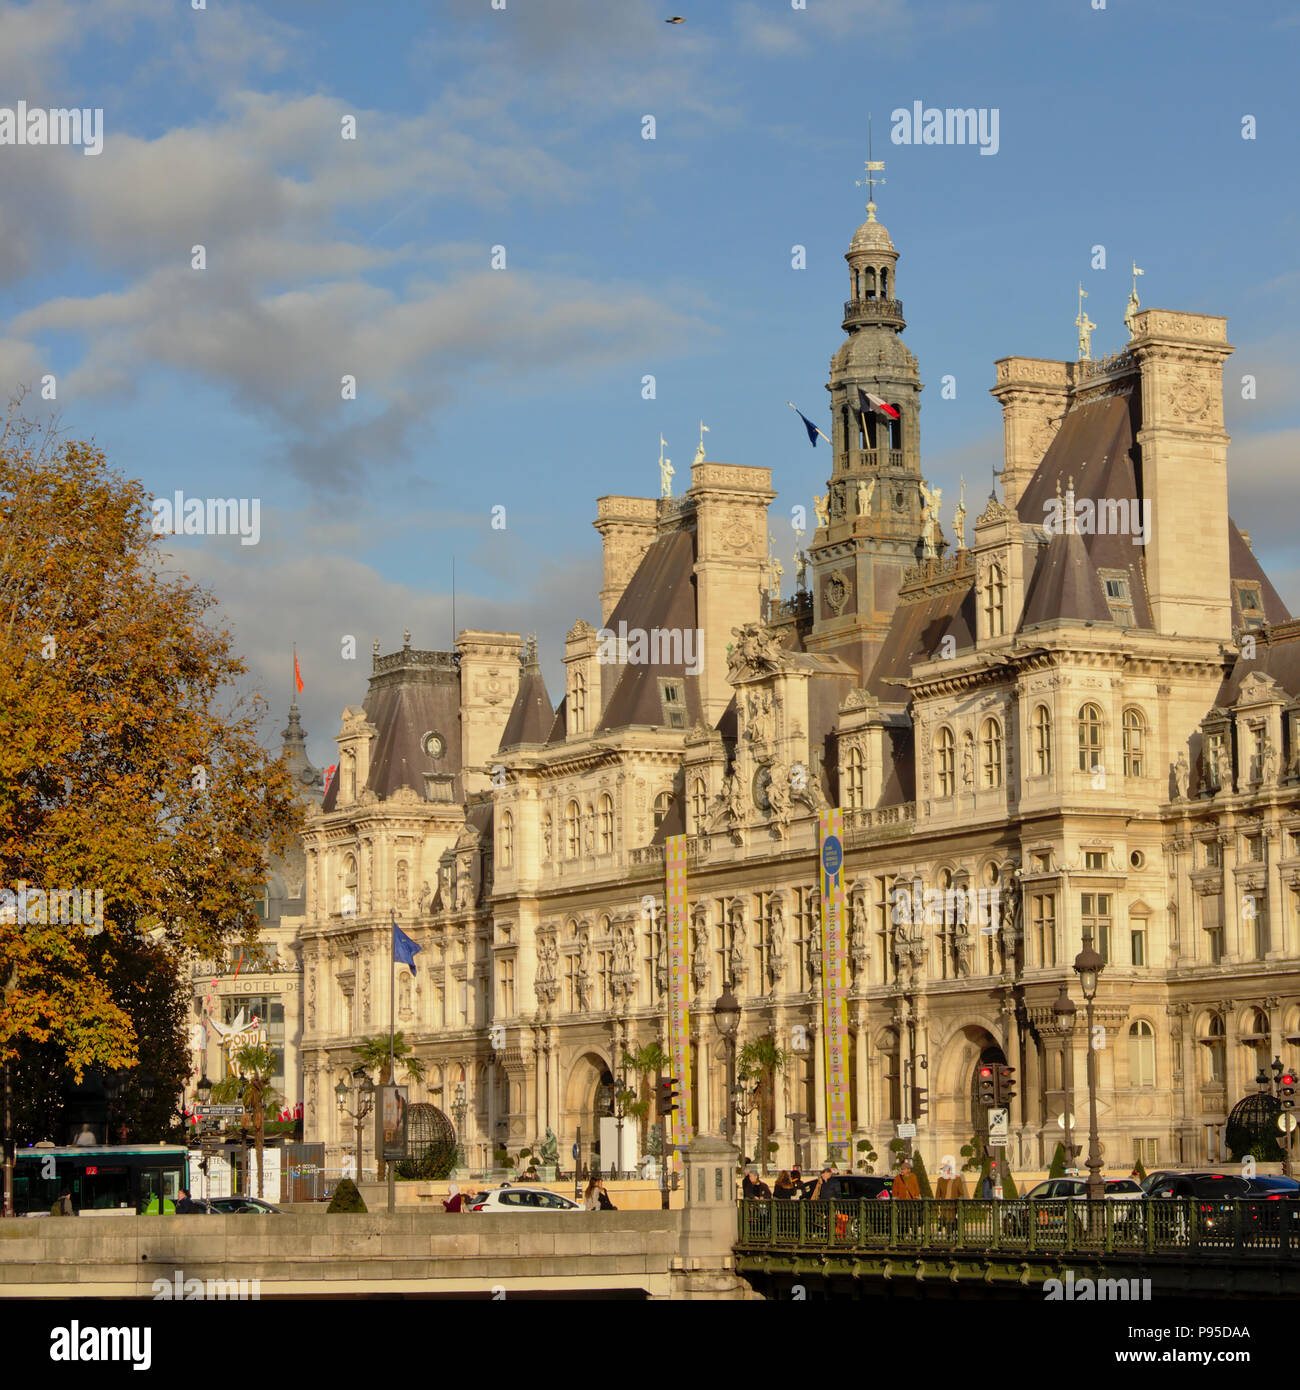 Cityhall of Paris in French Renaissance style on a sunny autumn day - Stock Image